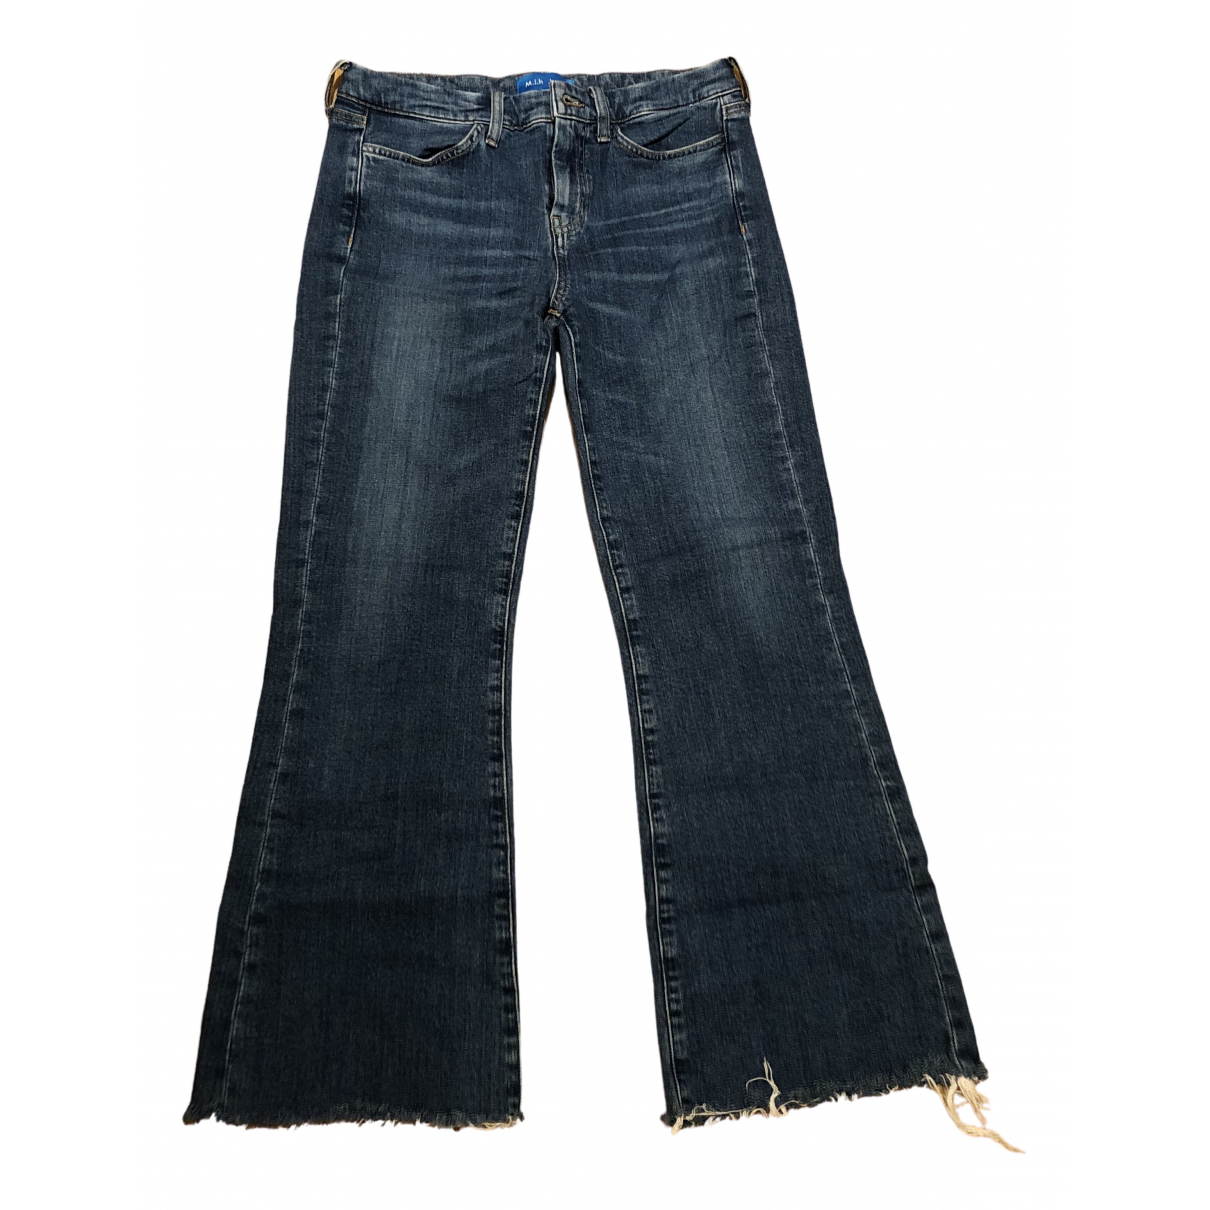 Mih Jeans \N Blue Denim - Jeans Jeans for Women 27 US